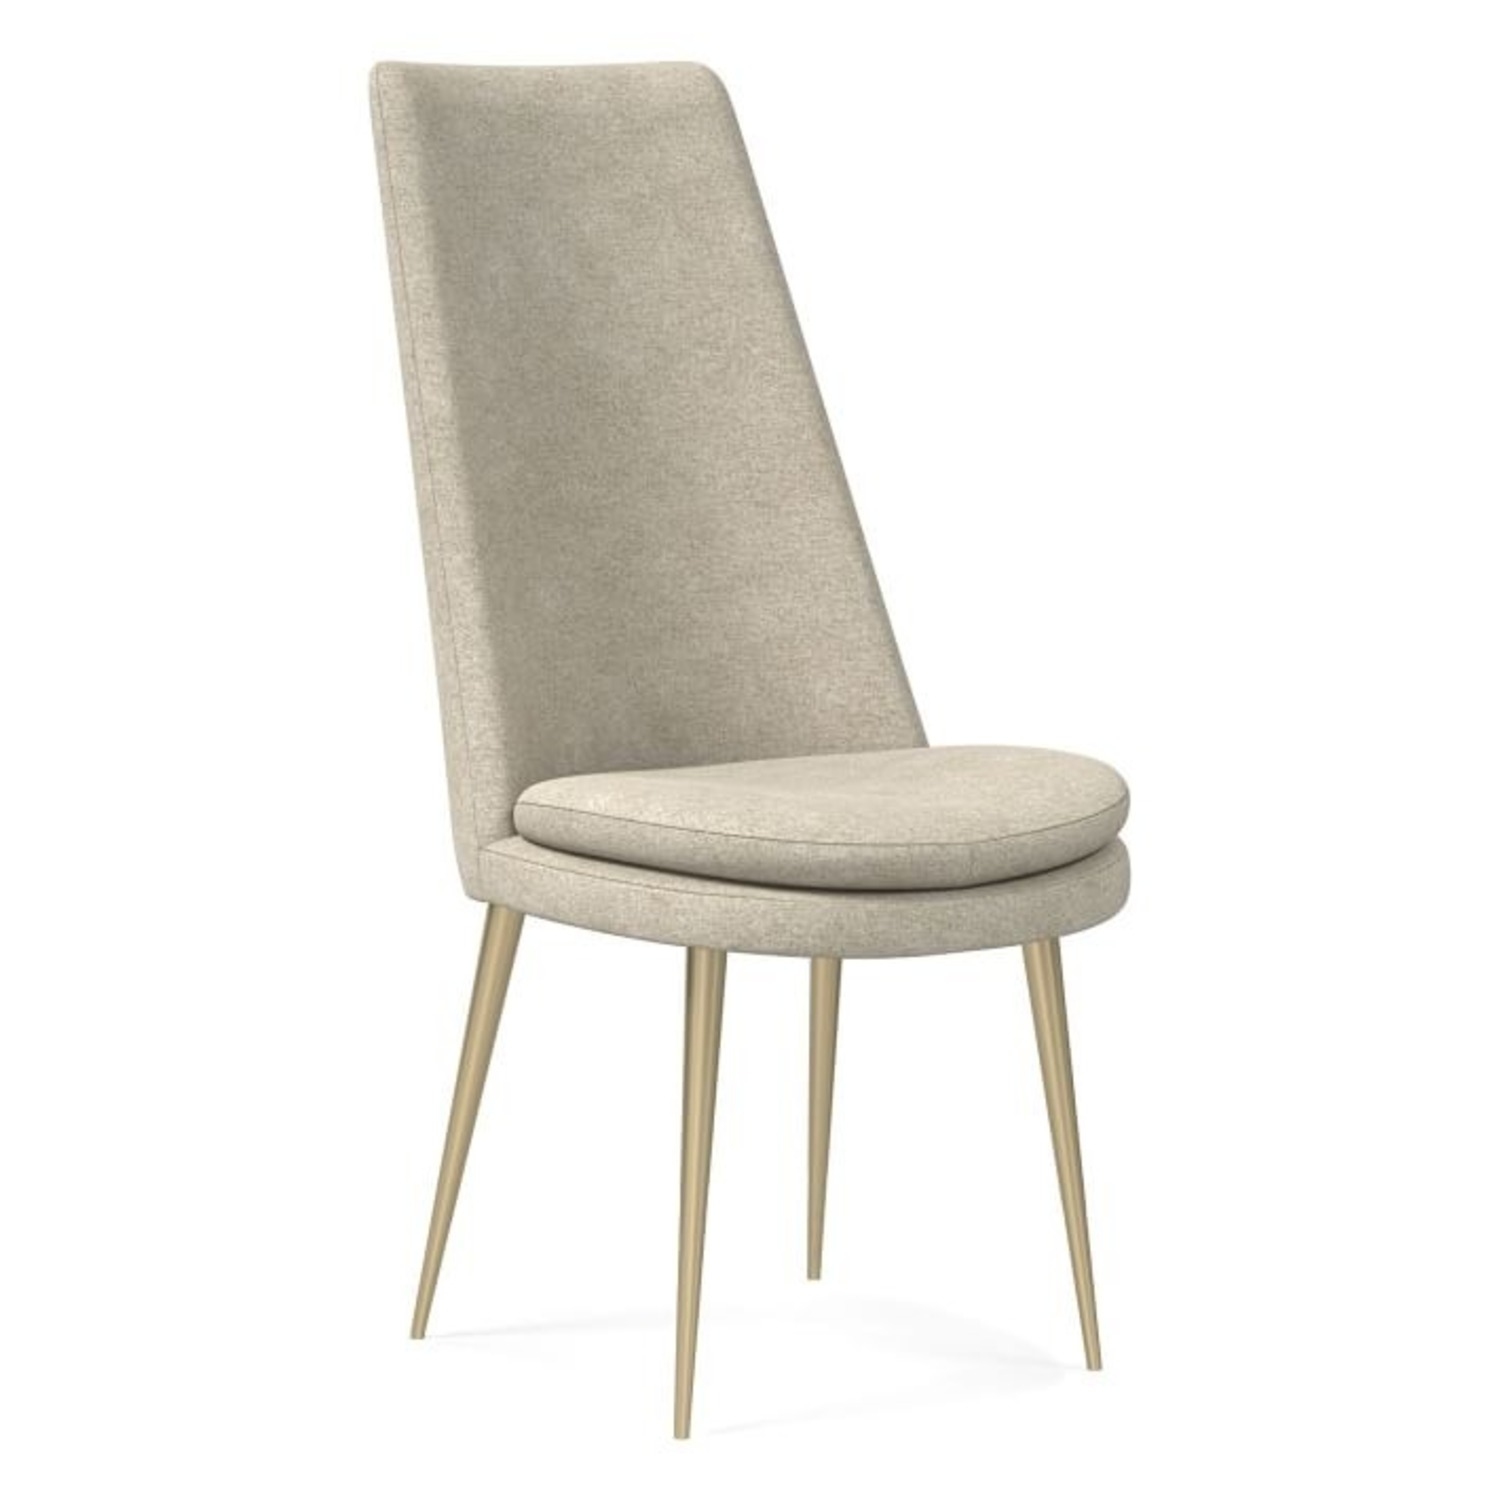 West Elm Finley High Back Dining Chair - image-2